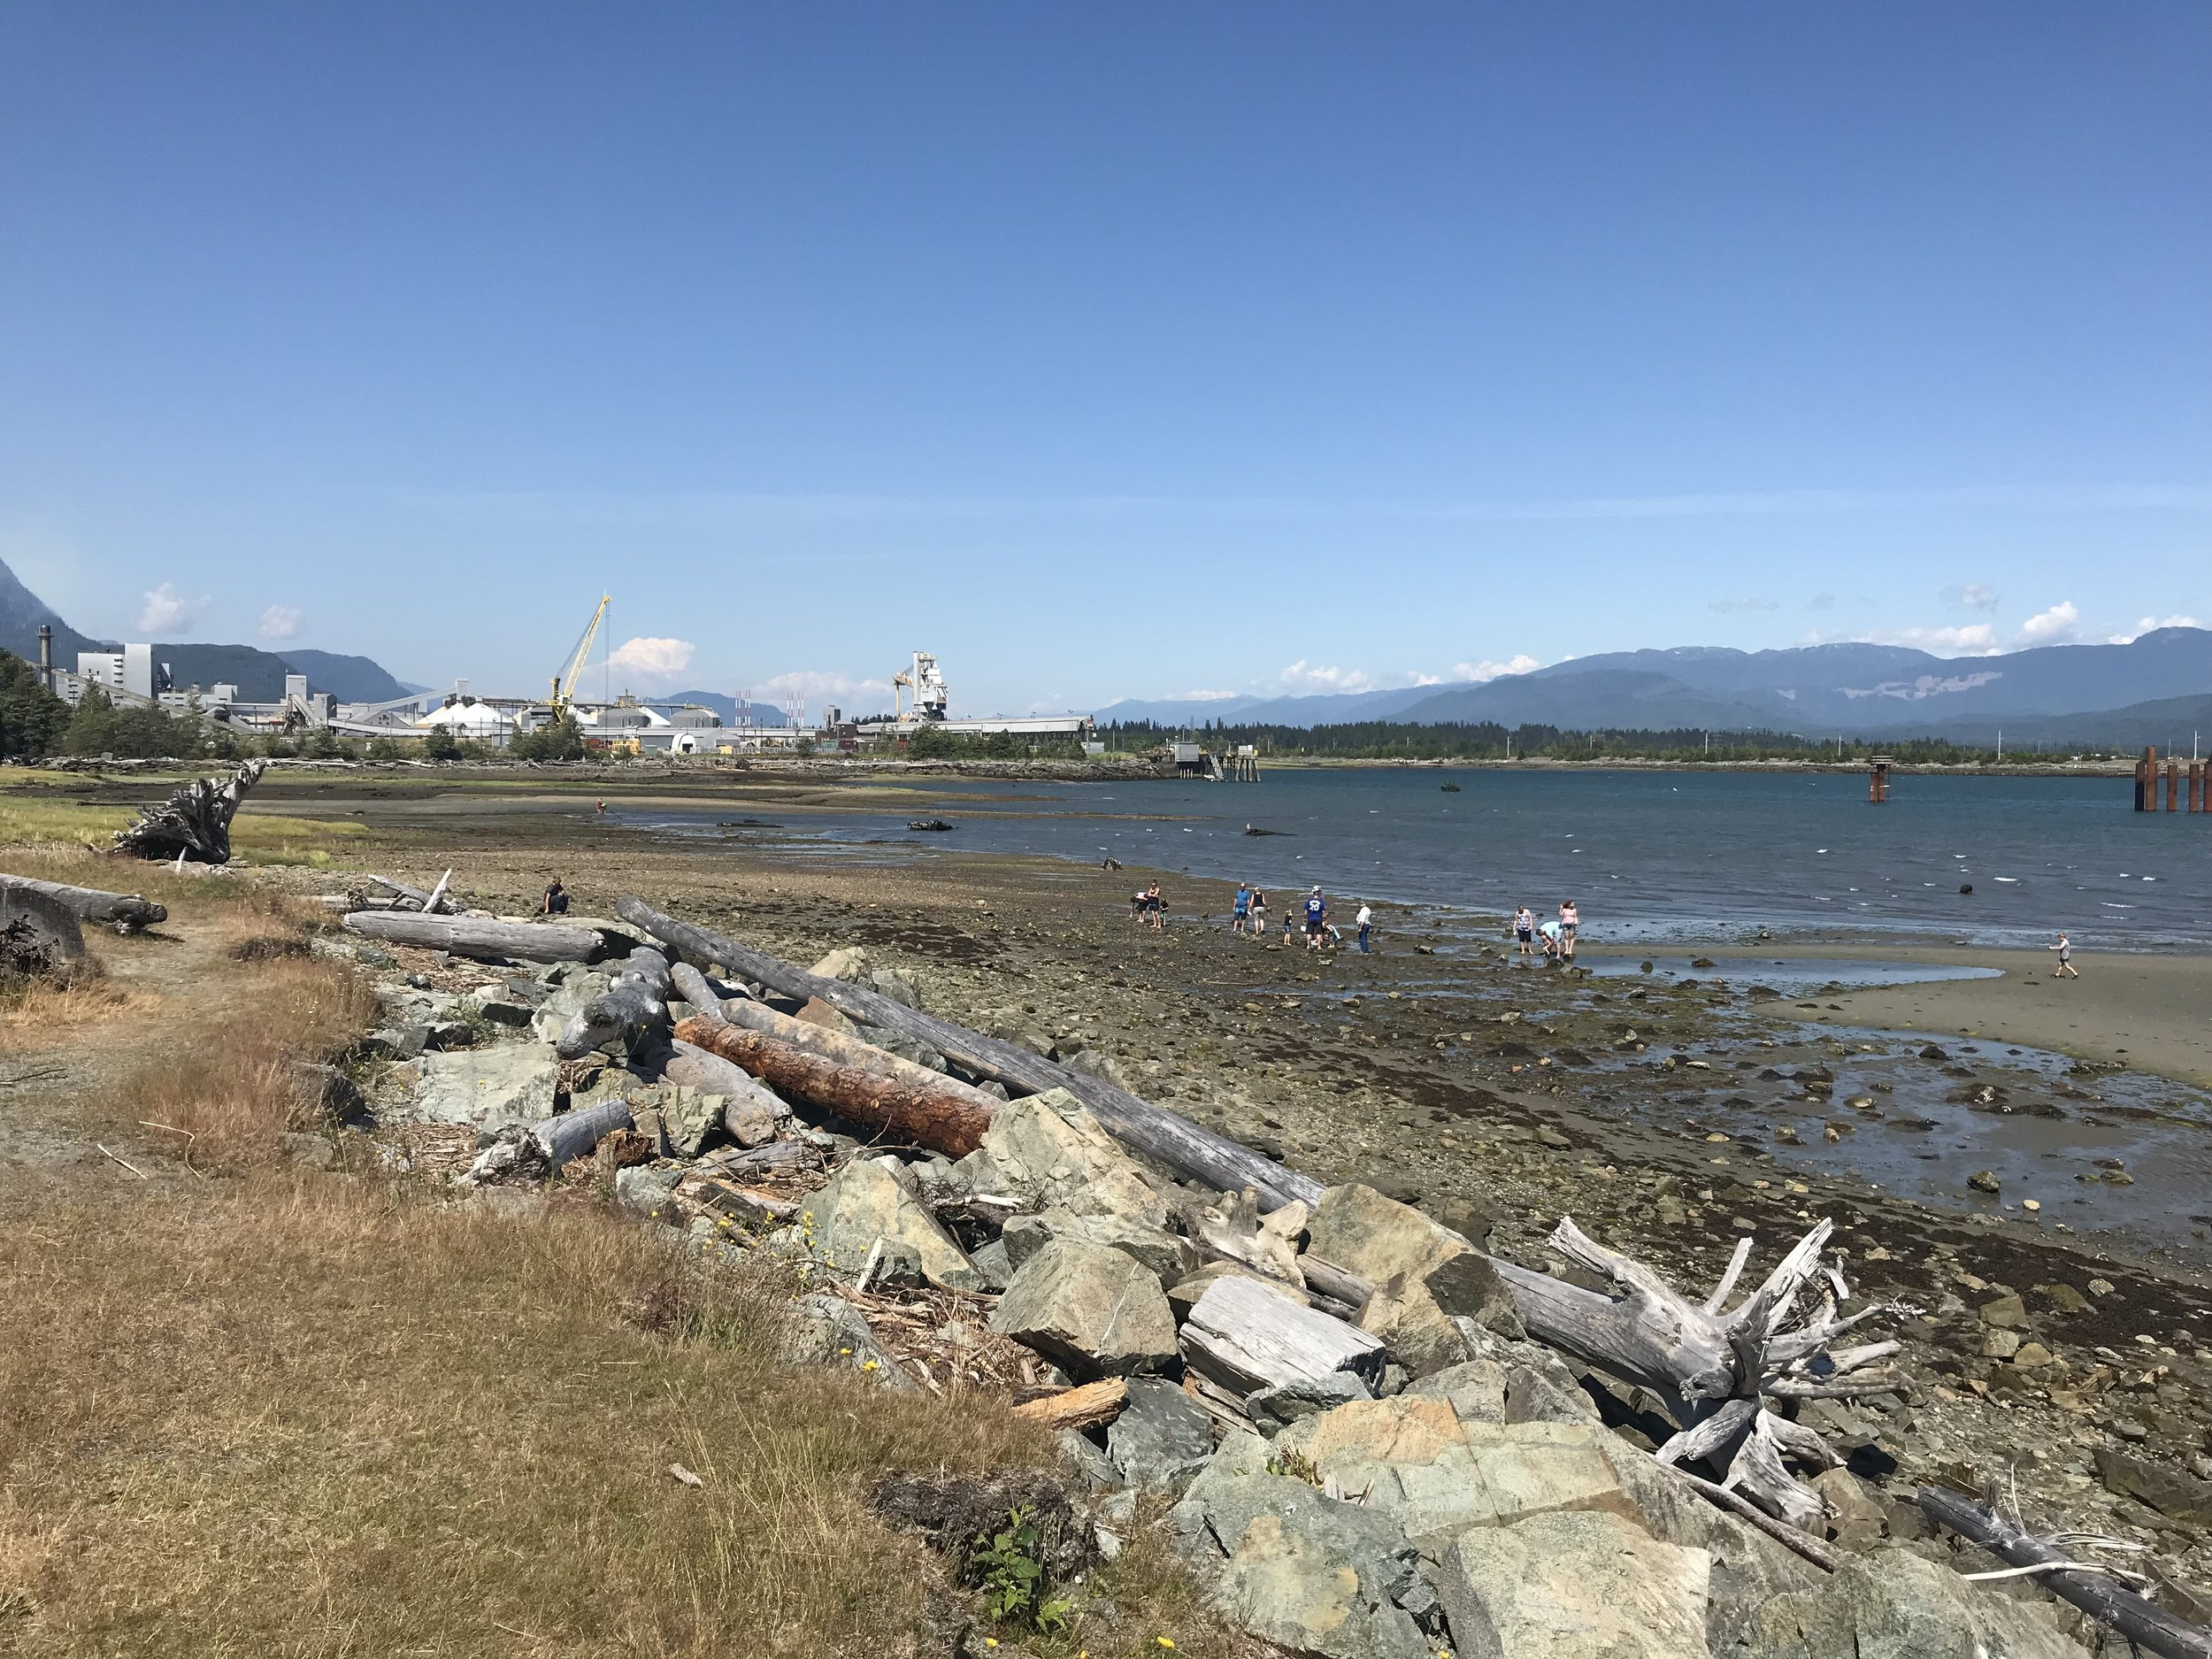 Hospital Beach in Kitimat, BC. Left: Rio Tinto Alcan aluminum smelter. Future site of LNG Canada export facility behind smelter. Photo credit: Dr. Marieka Sax